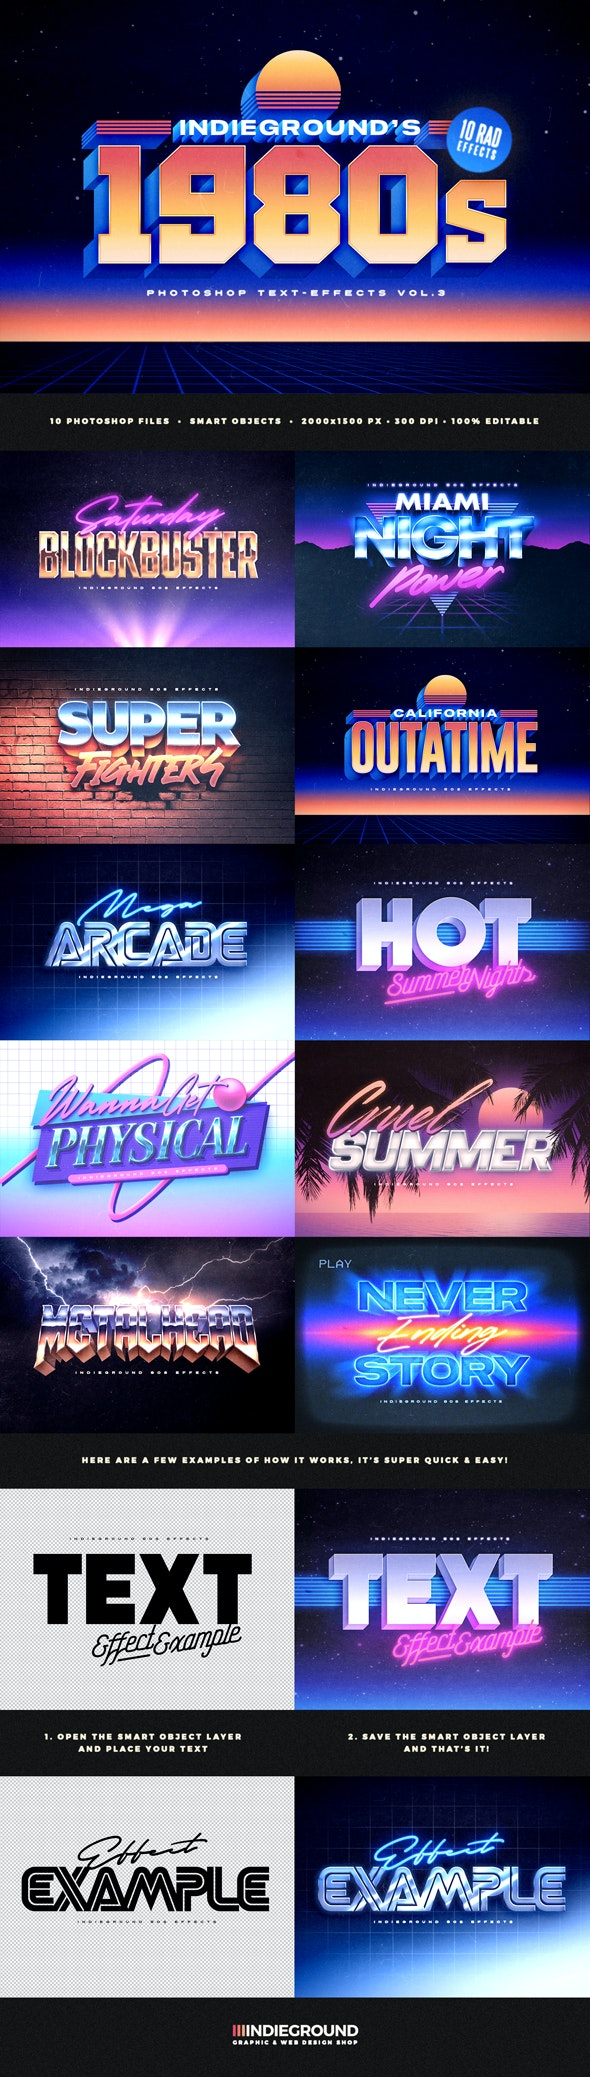 80s Text Effects Vol.3 - Text Effects Actions